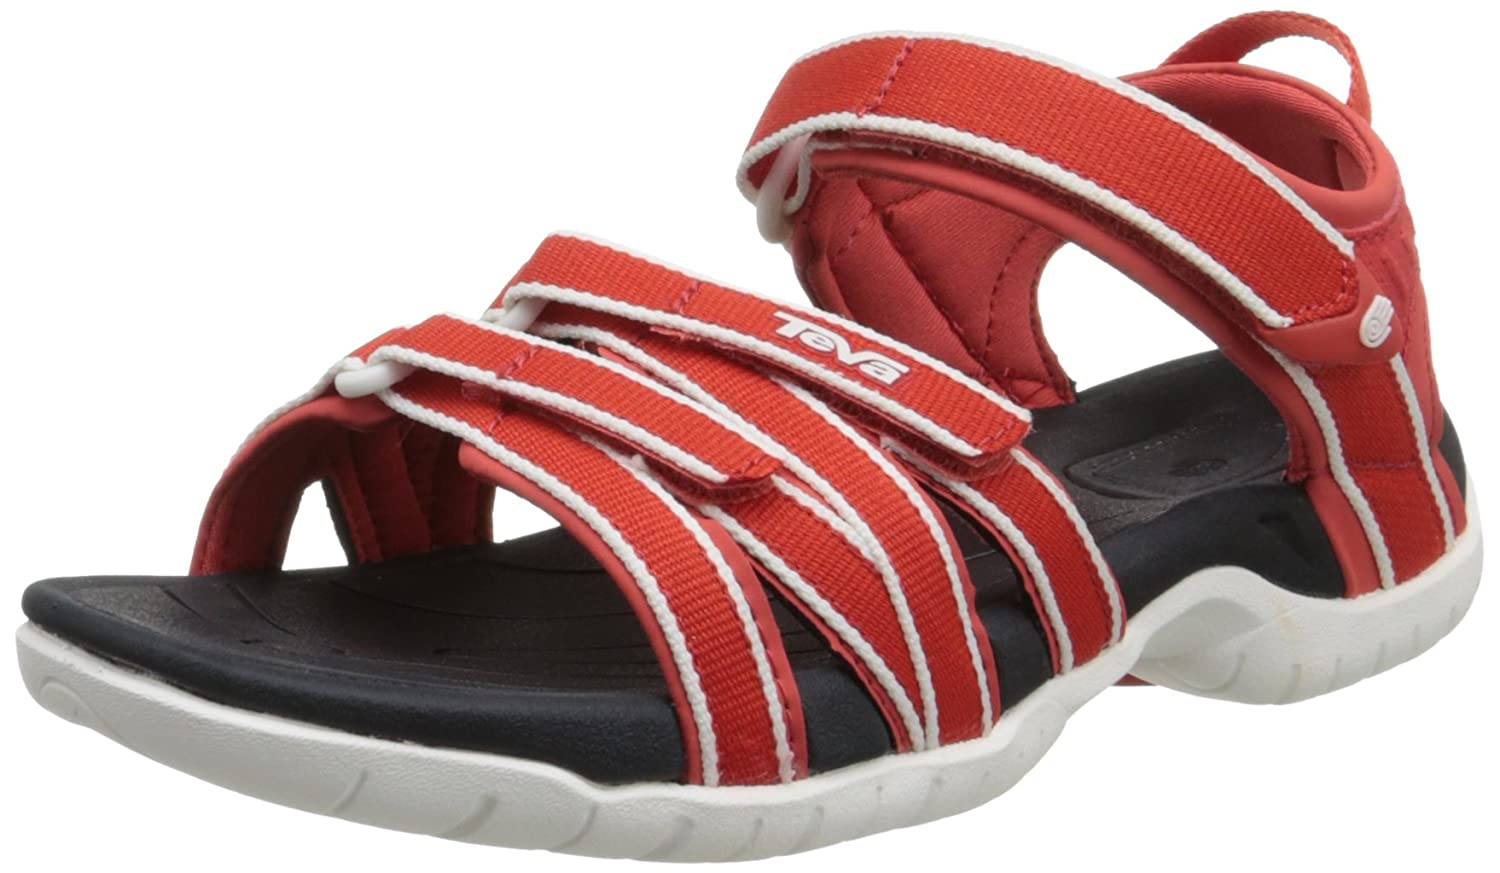 Teva Women's Tirra Athletic Sandal B00PRZTL30 7 M US|Grenadine